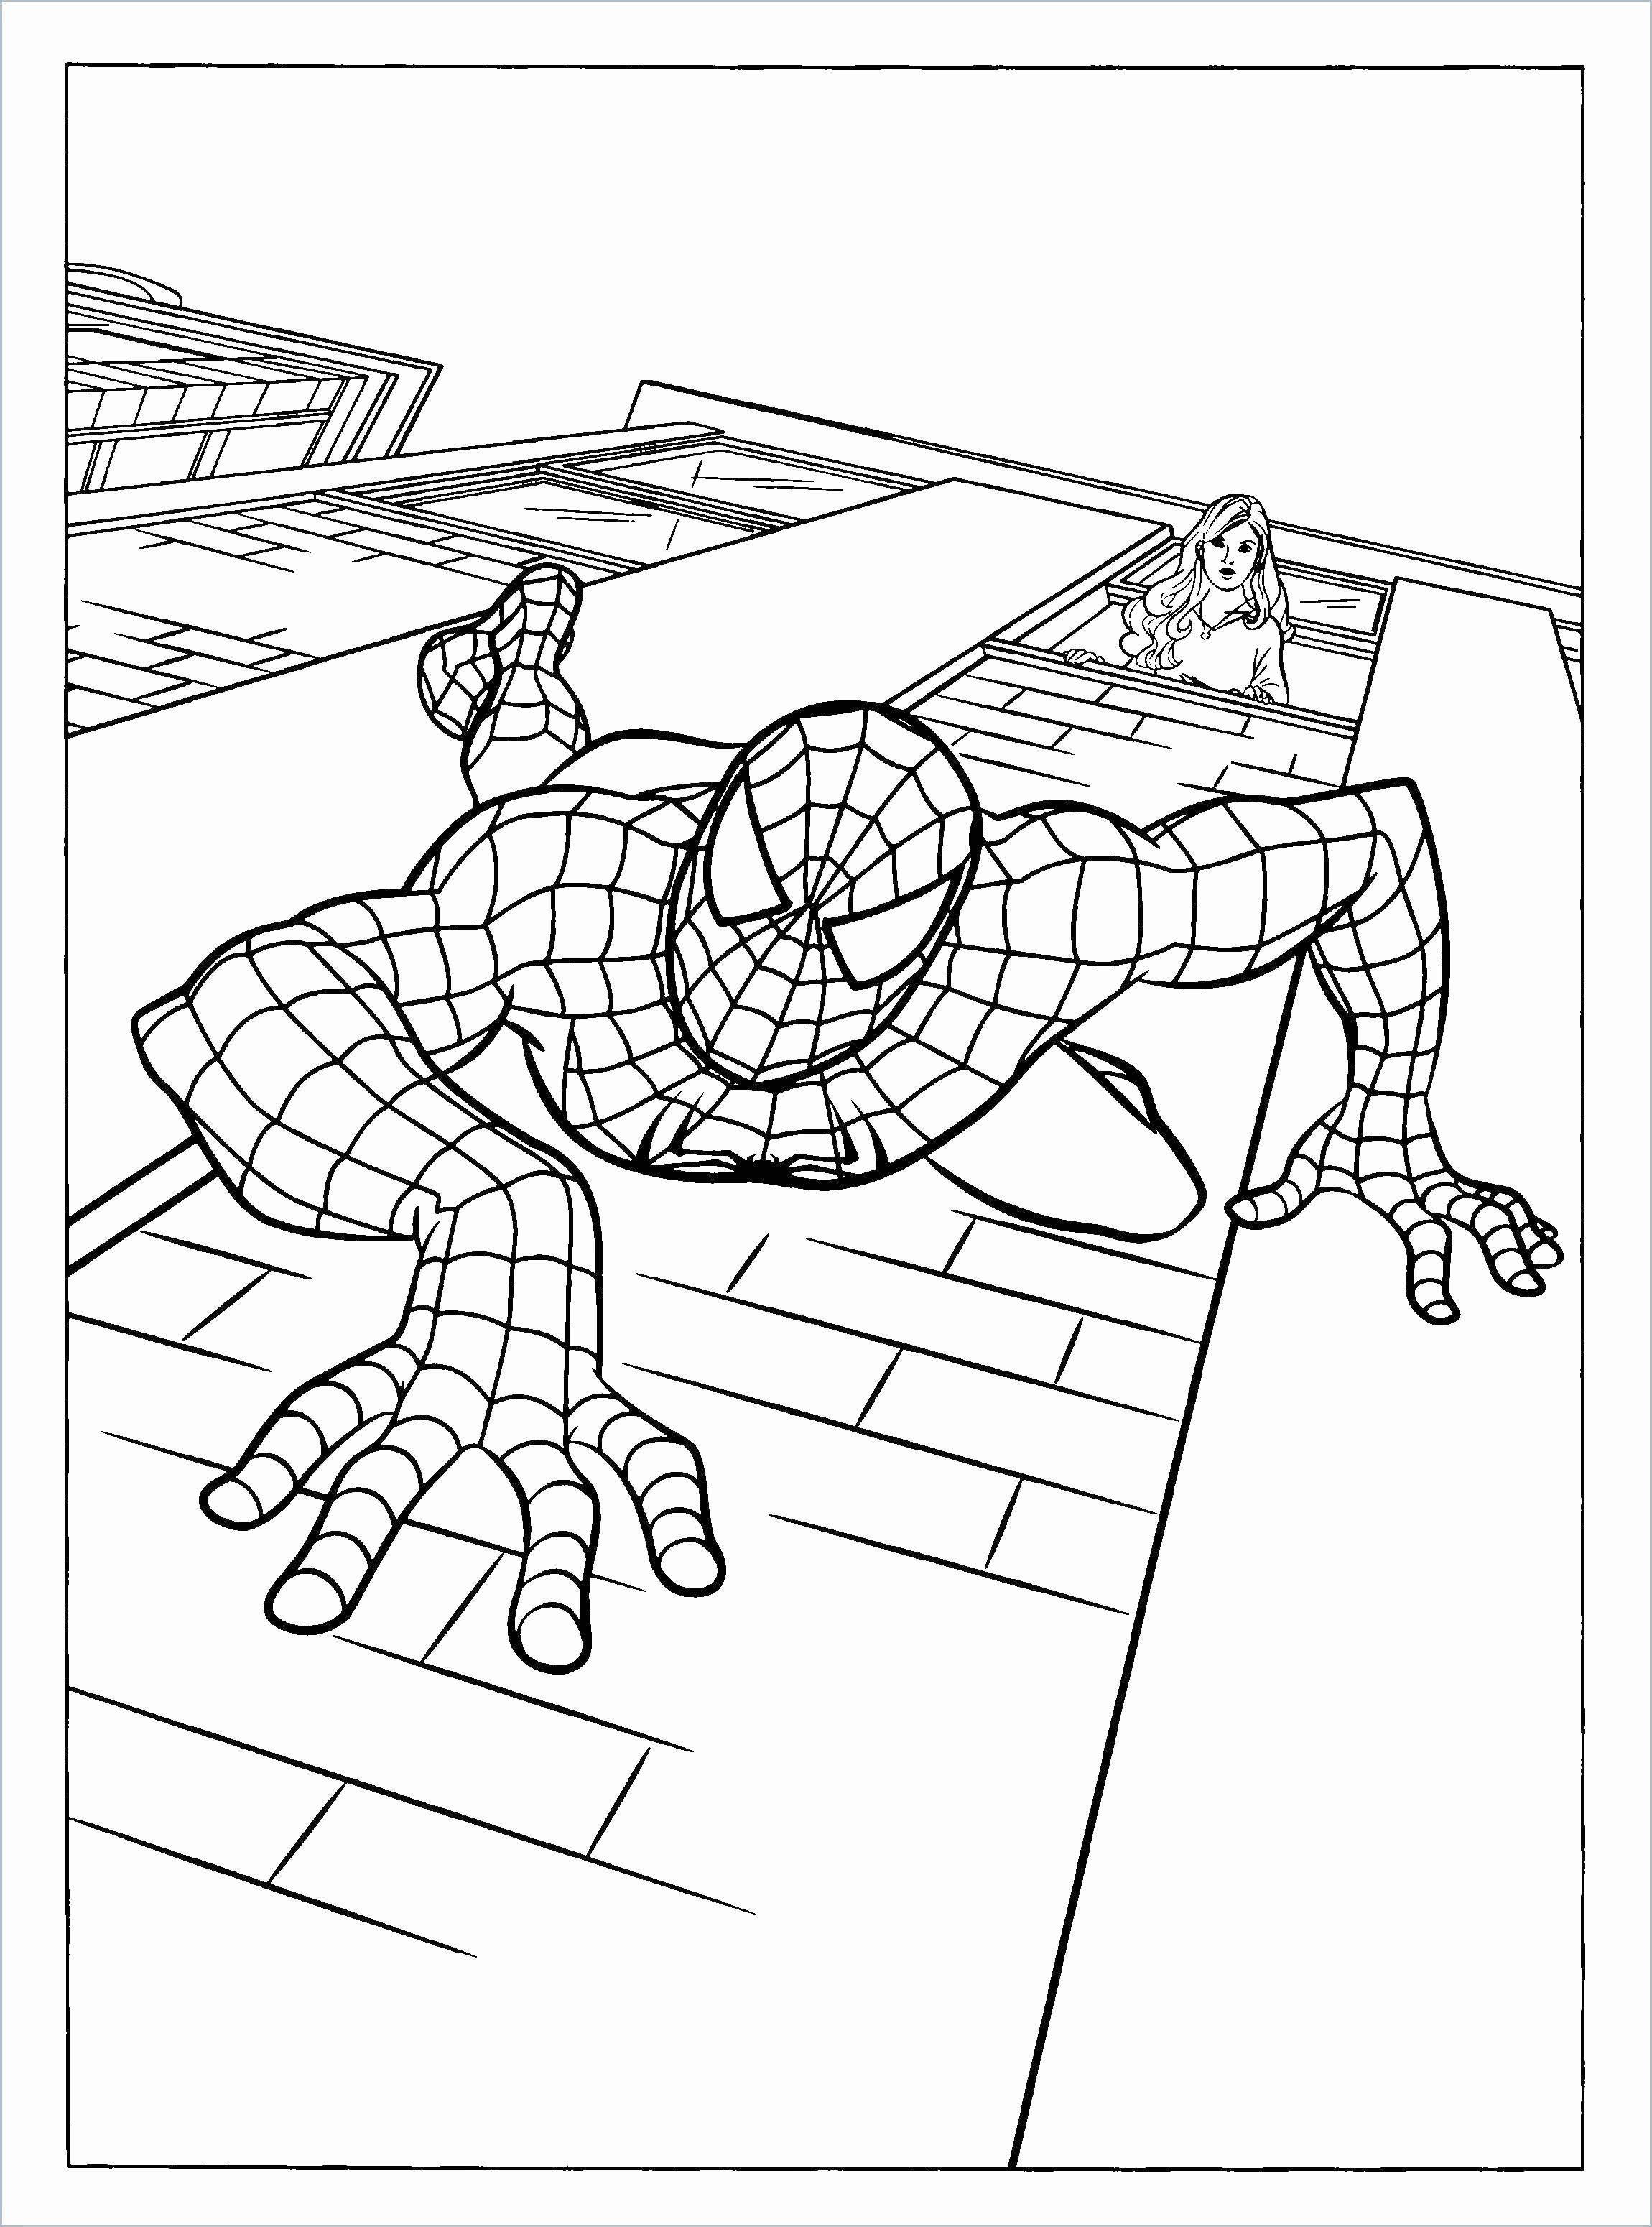 Pin By Naila Kiesha On 7 Geburtstag In 2020 Spiderman Coloring Superman Coloring Pages Superhero Coloring Pages